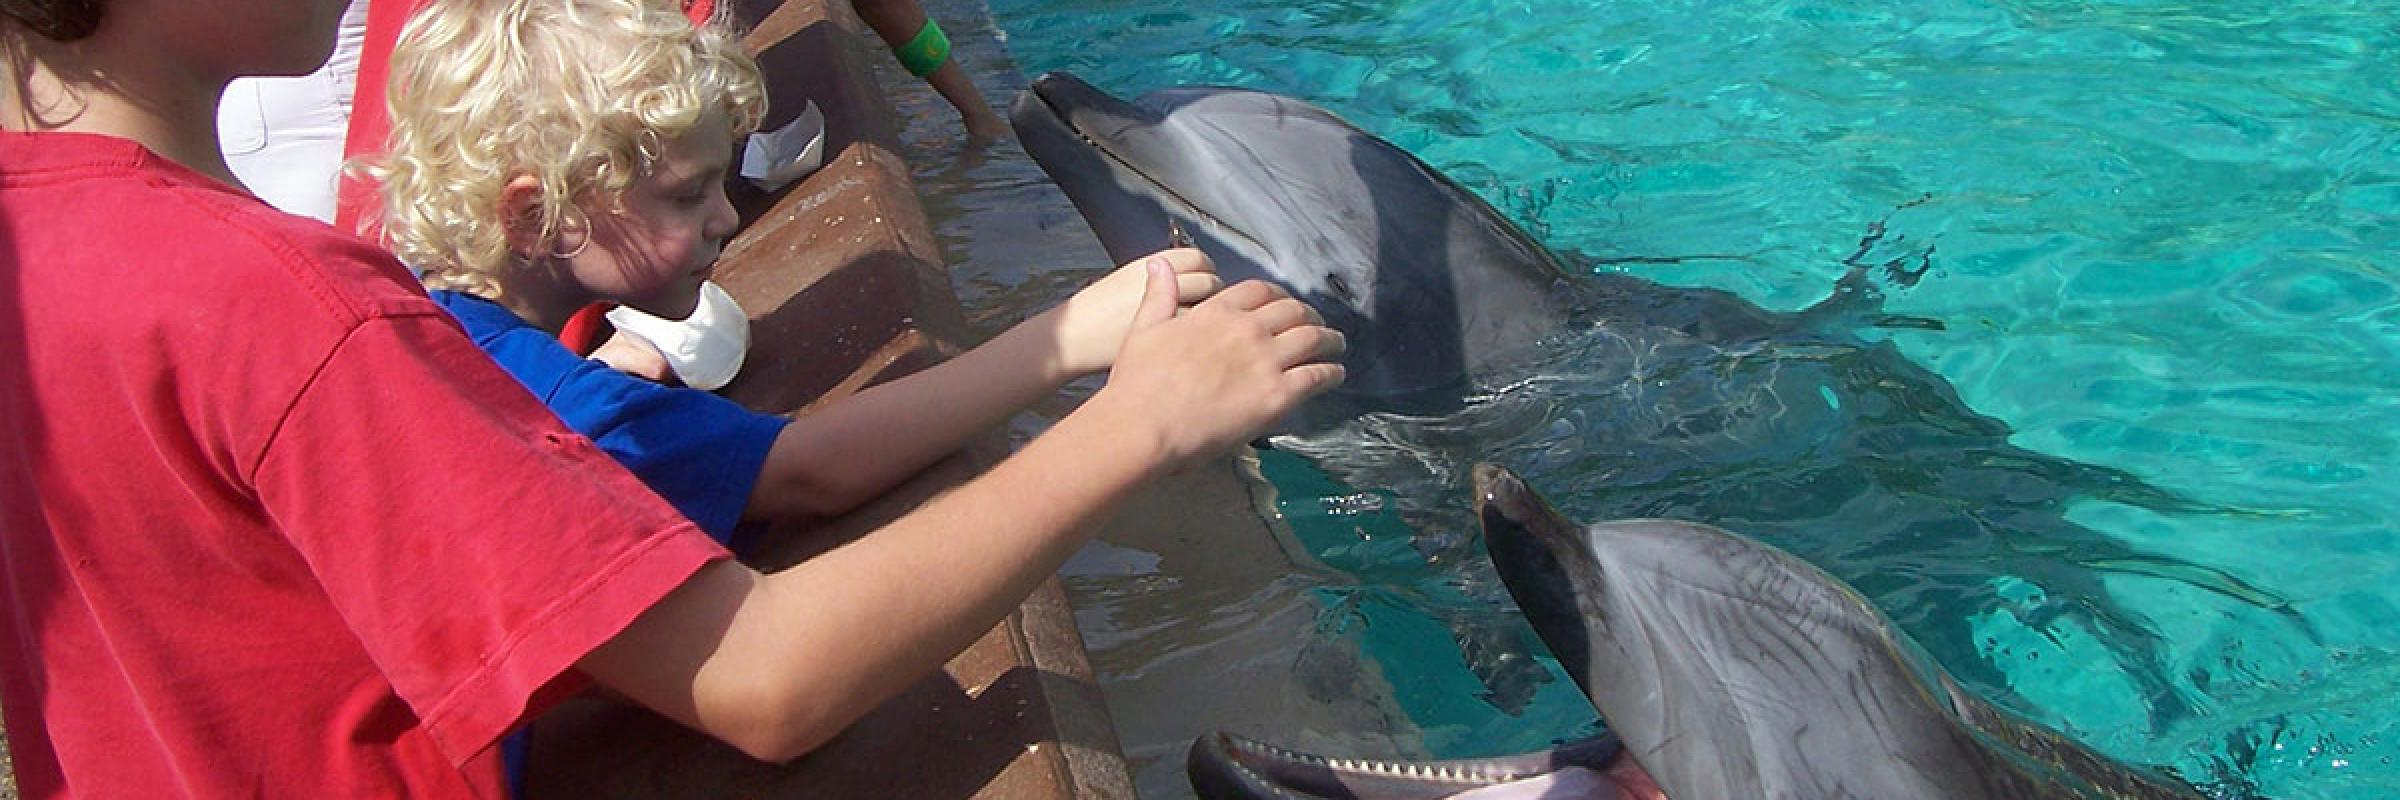 Seaworld, Florida